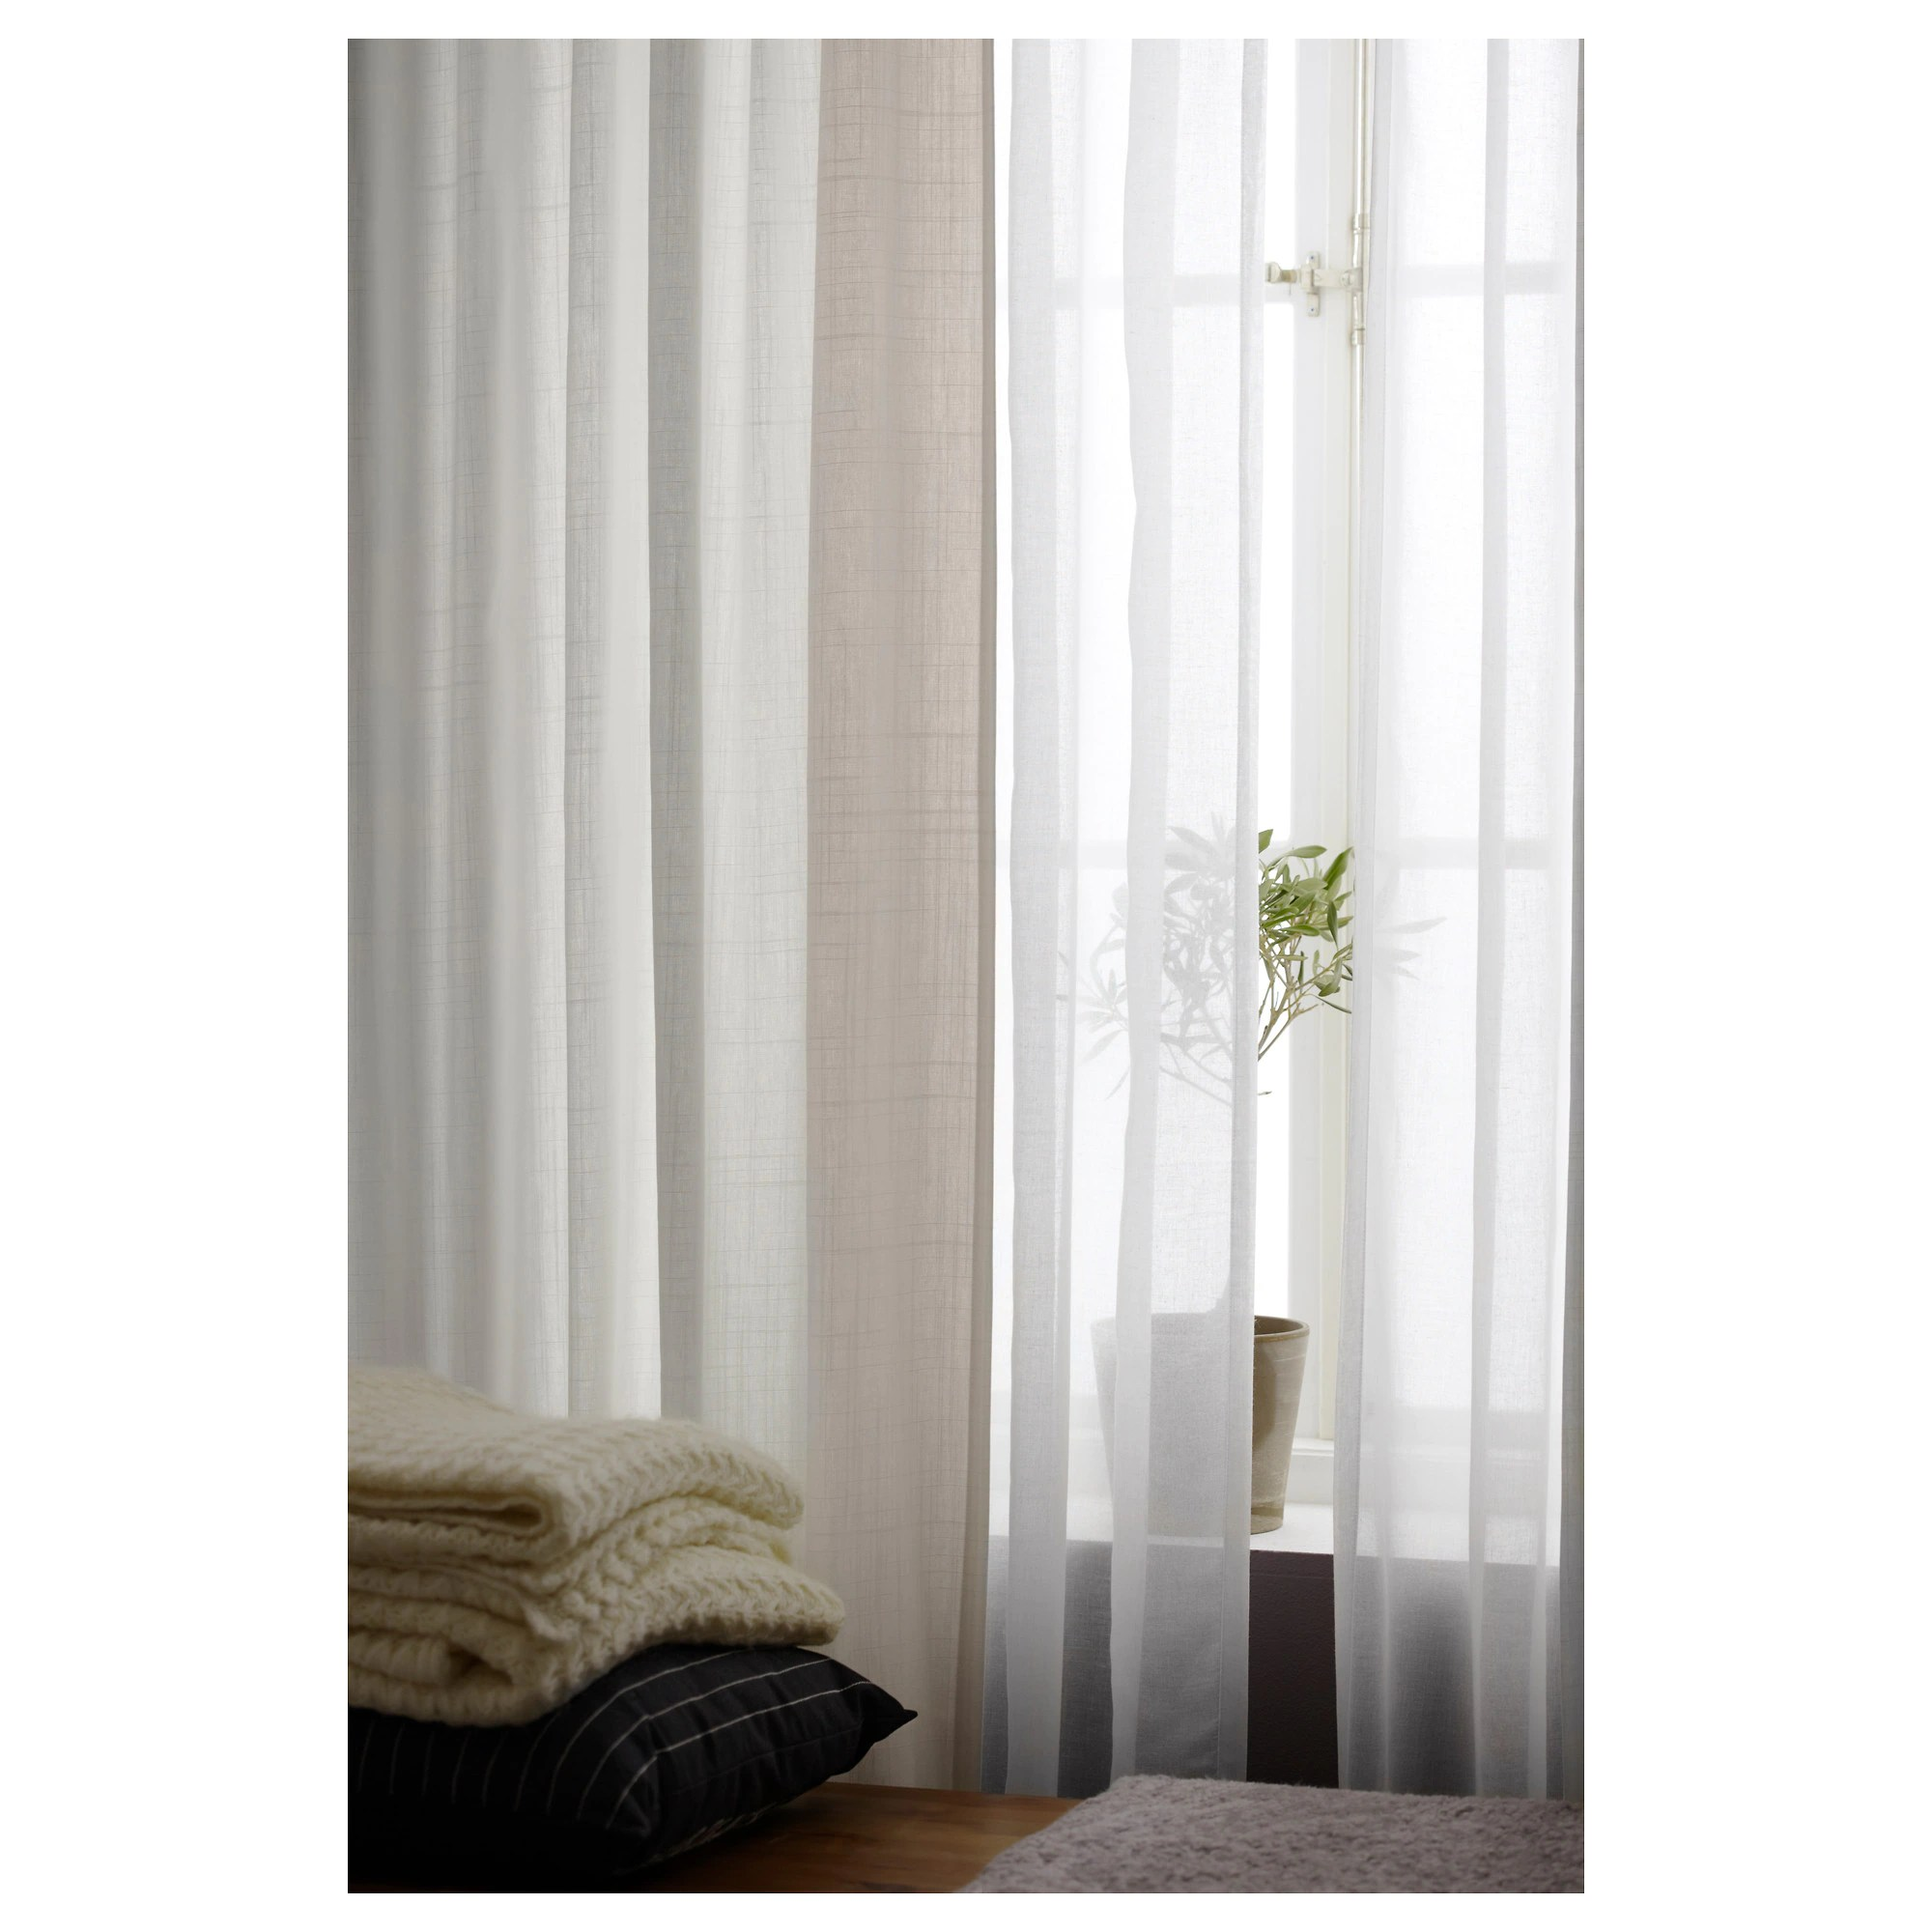 RITVA Curtains With Tie Backs 1 Pair 145x300 Cm IKEA